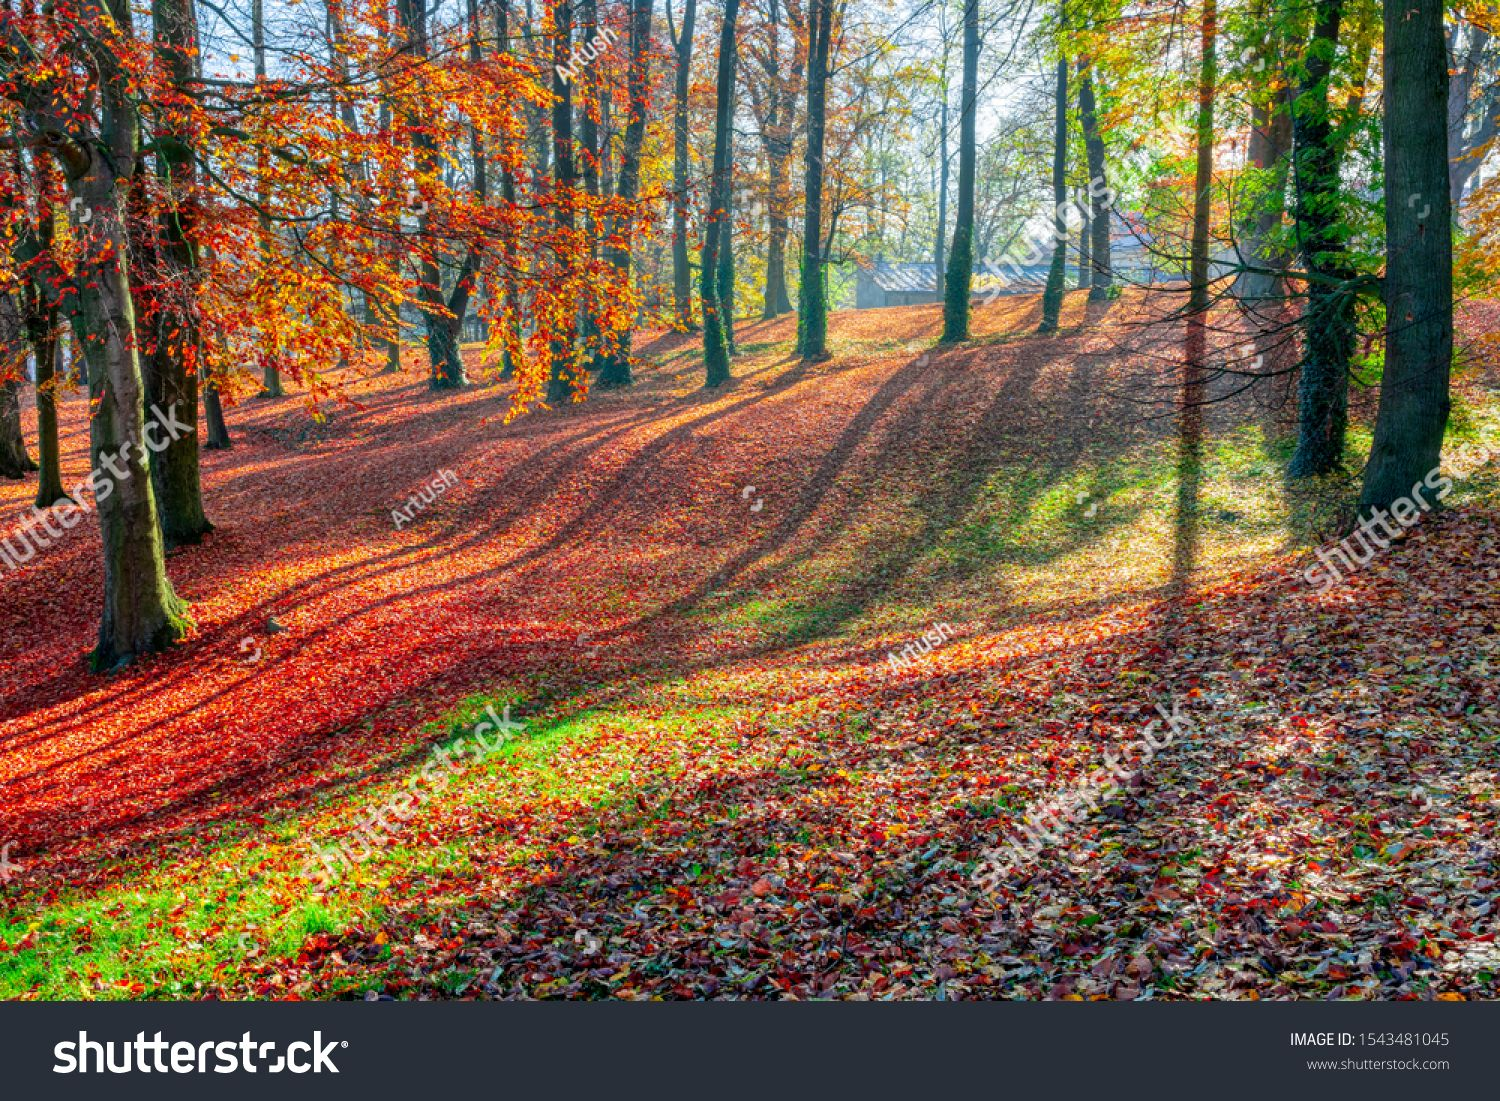 Romantic fall colored park with trees and morning sunlight. Autumn season natural background. Fall concept in park. Vivid colorful natural scene. Europe #Ad , #Sponsored, #morning#trees#Autumn#sunlight